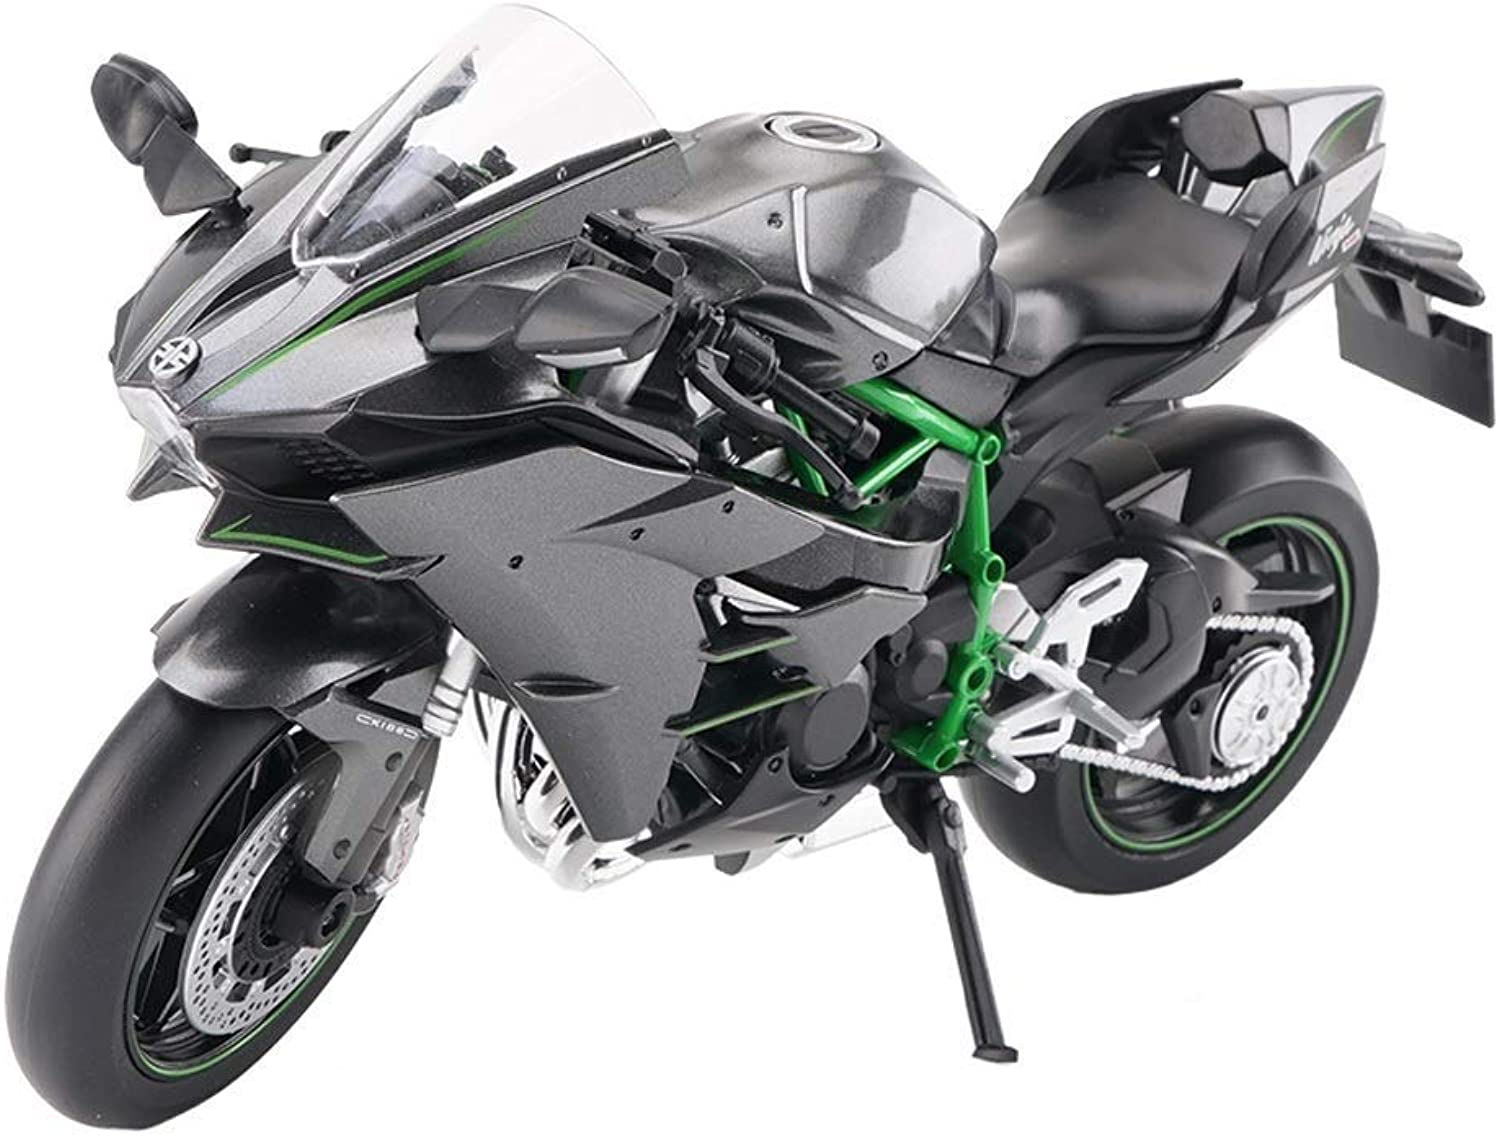 Maisto 1 12 Scale Motorcycle Model 1 12 Kawasaki H2R Motorcycle Model Motor Cycle Car Collection Kids Toys Scale Model Simulation Vehicle